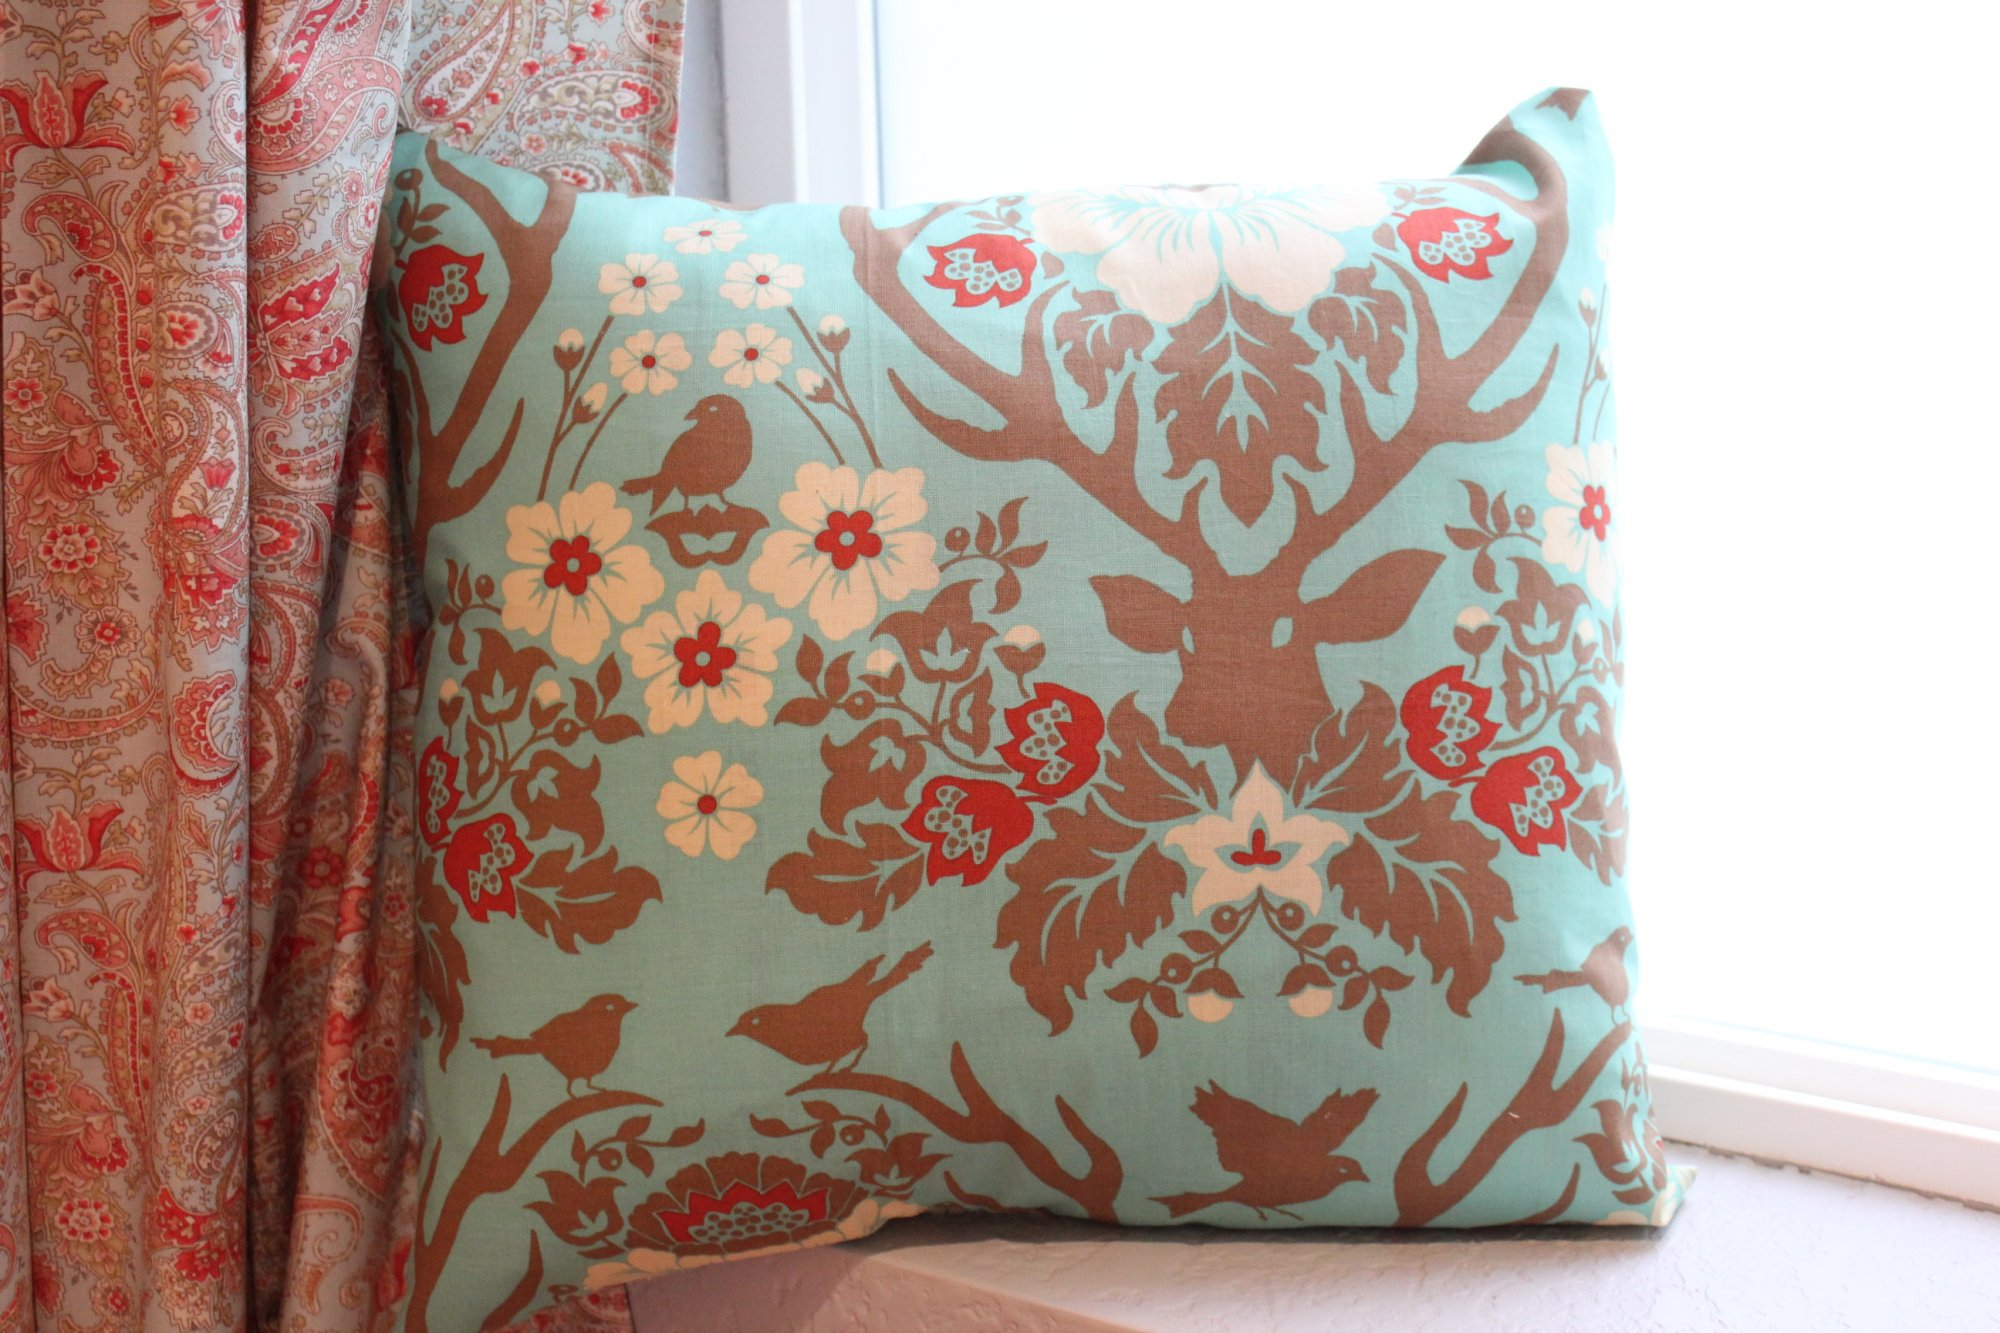 Pottery Barn Lumbar Pillow | Fall Throw Pillows | Decorative Pillow Covers